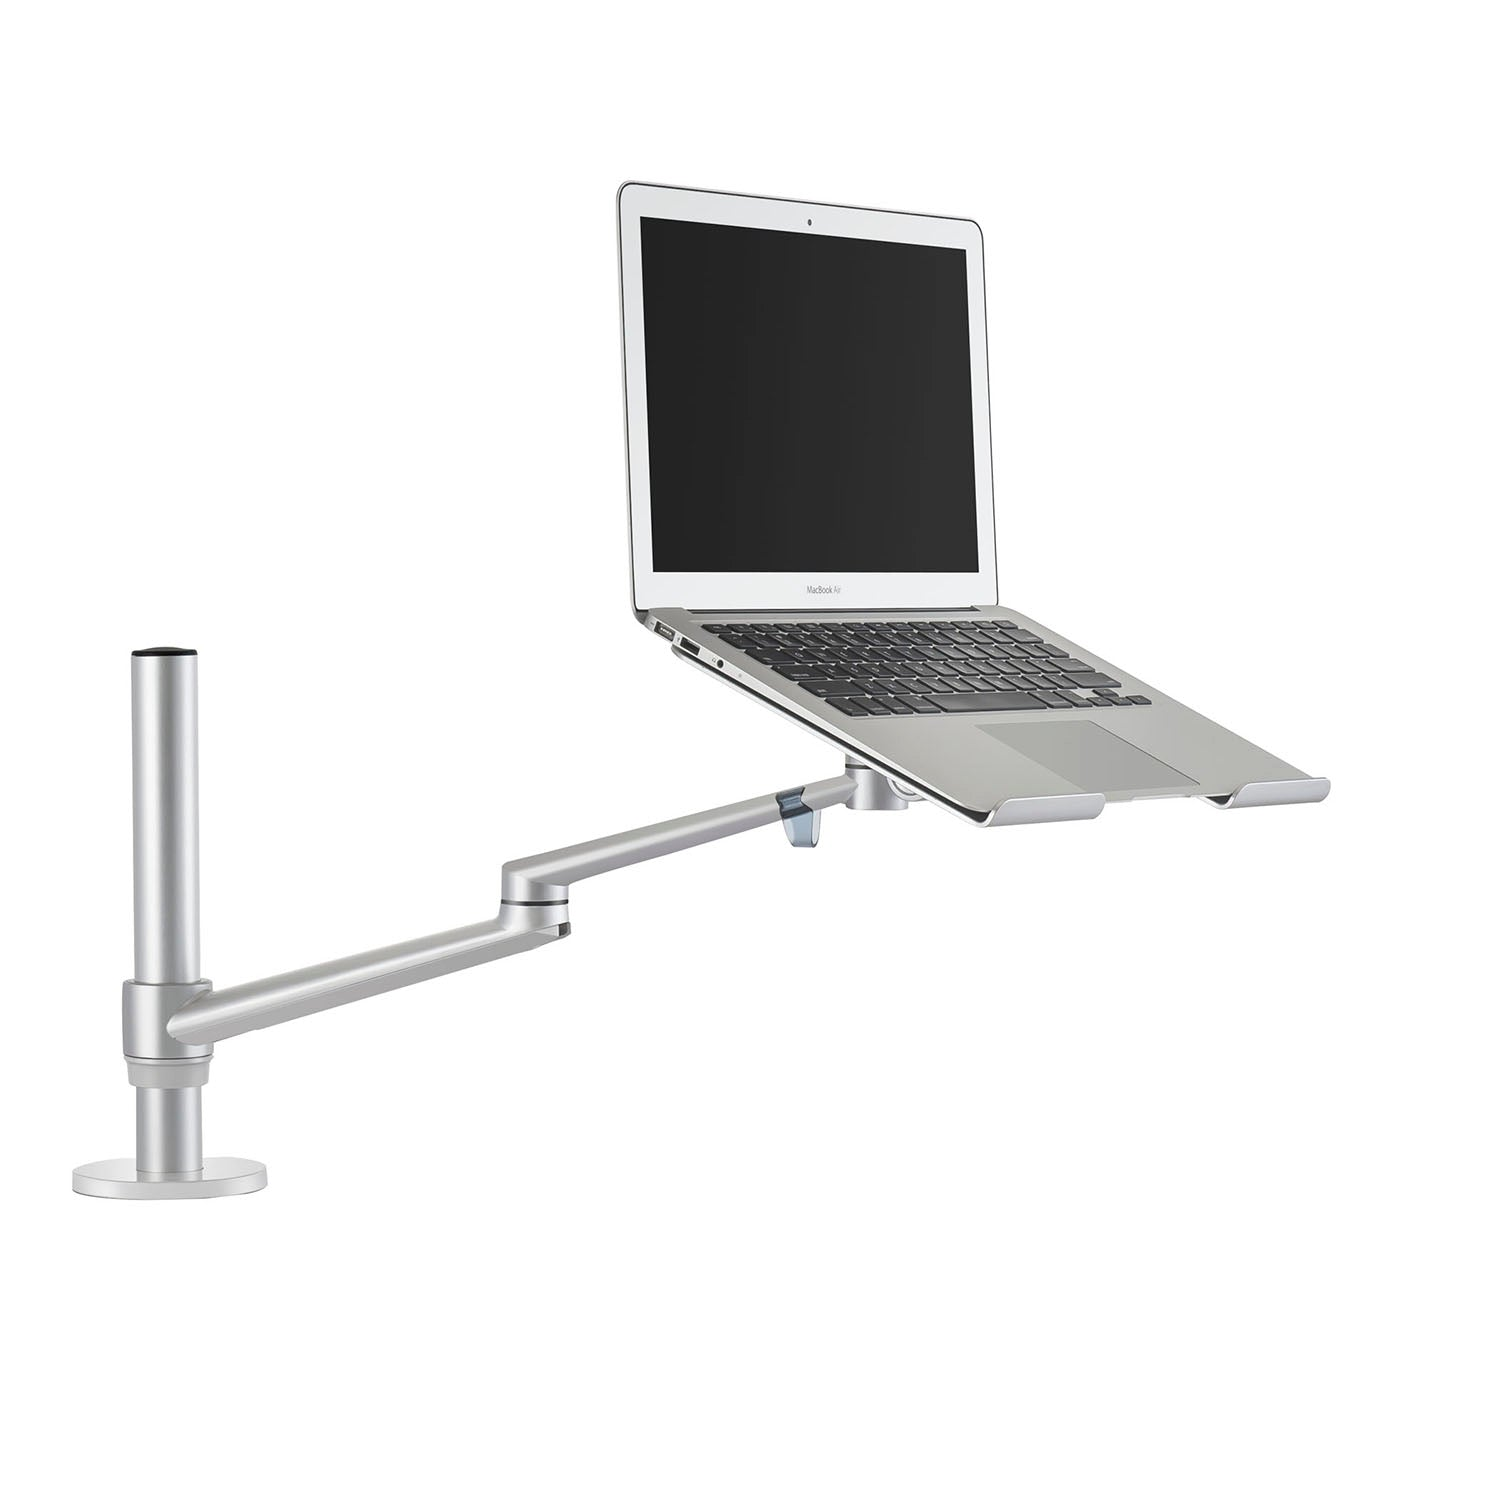 Surprising Thingyclub Adjustable Aluminium Universal 2 In 1 Single Laptop Notebook Or Tablet Desk Mount Arm Stand Bracket With Tilt And Swivel Silver Black Home Interior And Landscaping Synyenasavecom